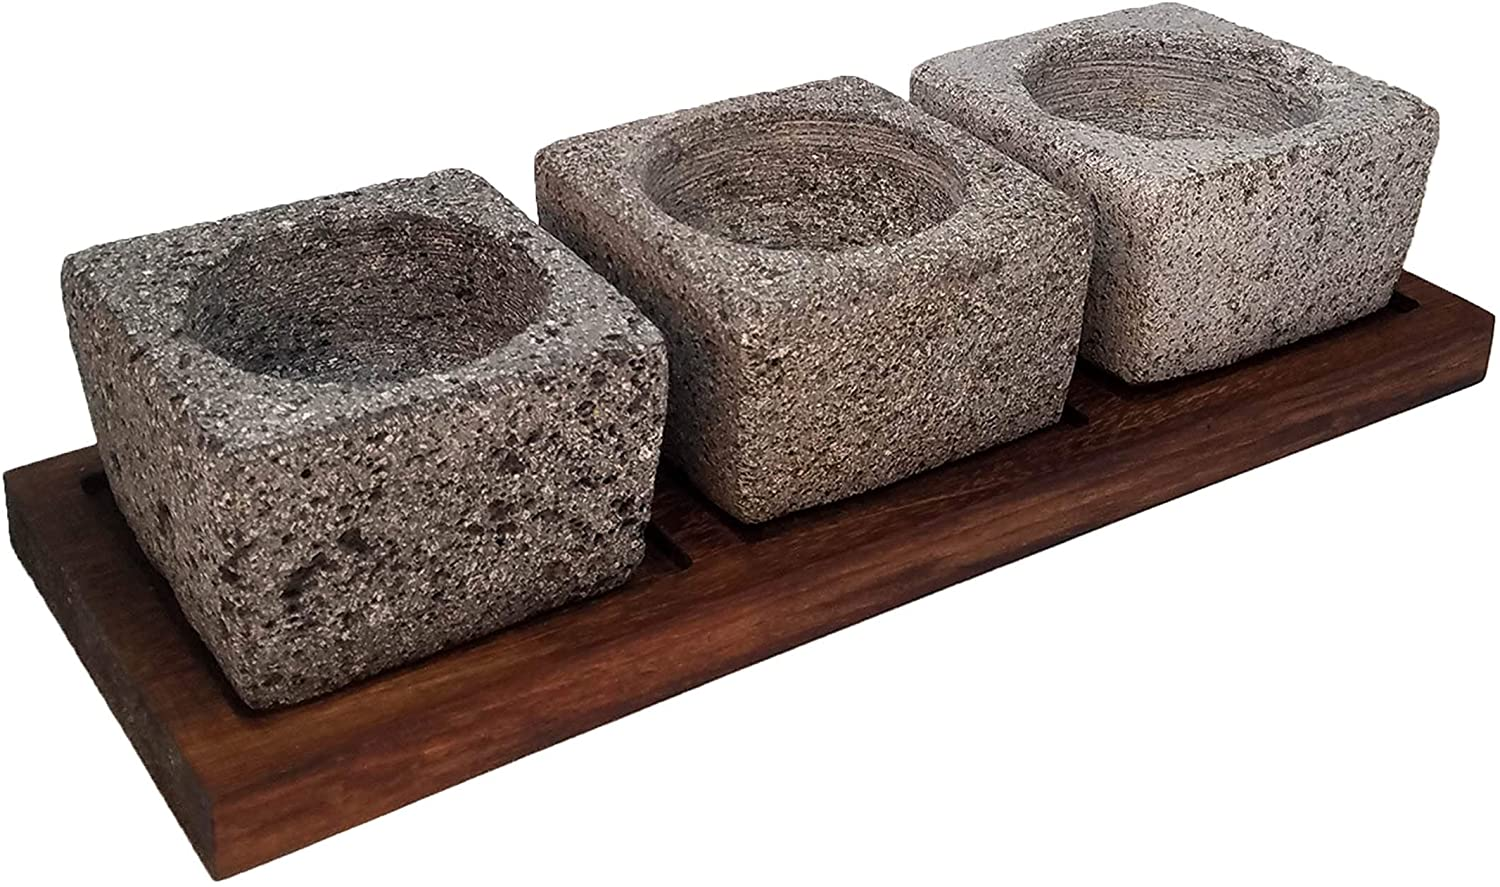 VOLCANIC ROCK PRODUCTS / Set-of-3-Small-4''-Mortars-with-Parota-Wood-Serving-Board